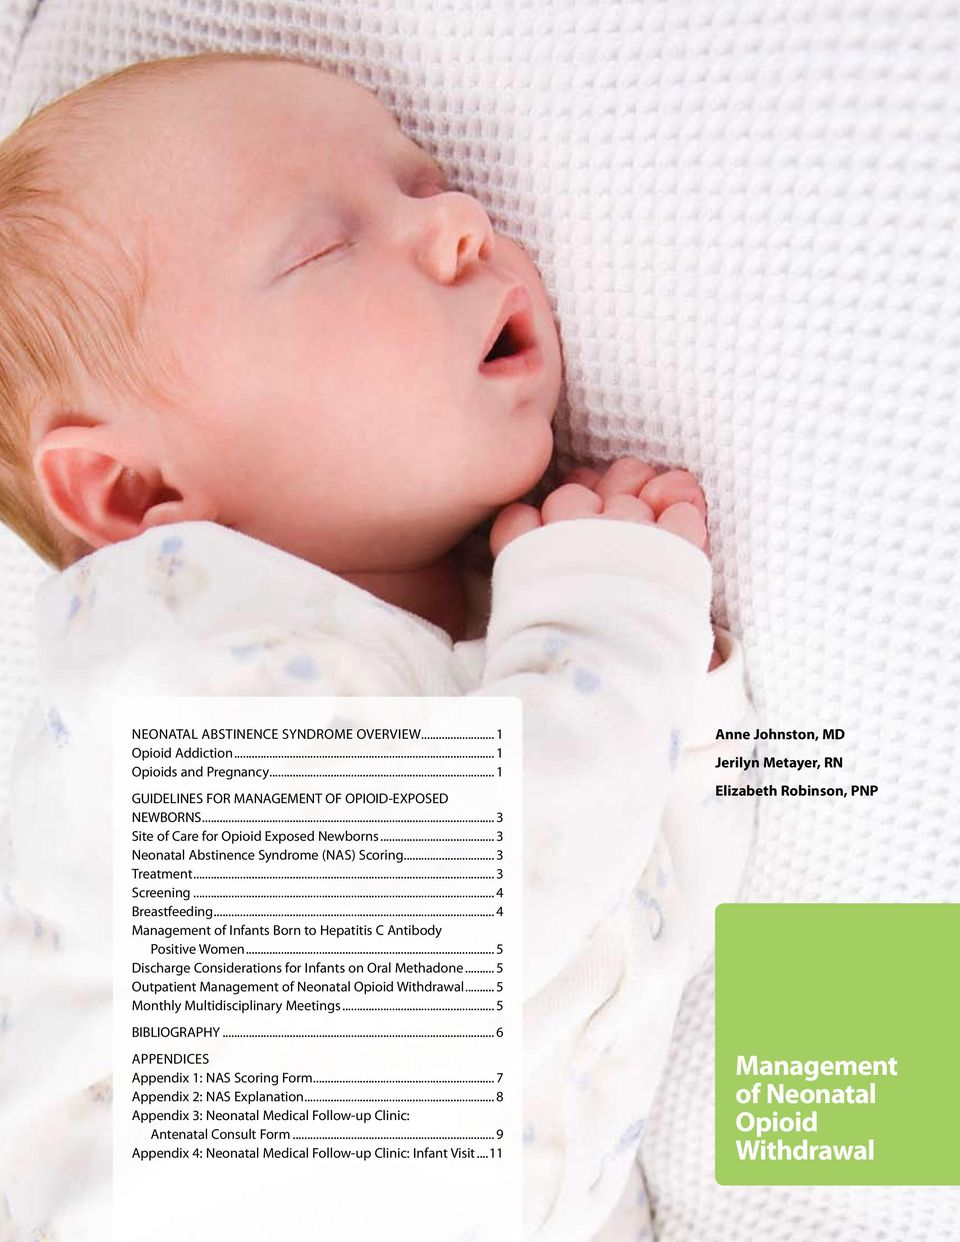 .. 5 Discharge Considerations for Infants on Oral Methadone... 5 Outpatient Management of Neonatal Opioid Withdrawal... 5 Monthly Multidisciplinary Meetings... 5 BIBLIOGRAPHY.